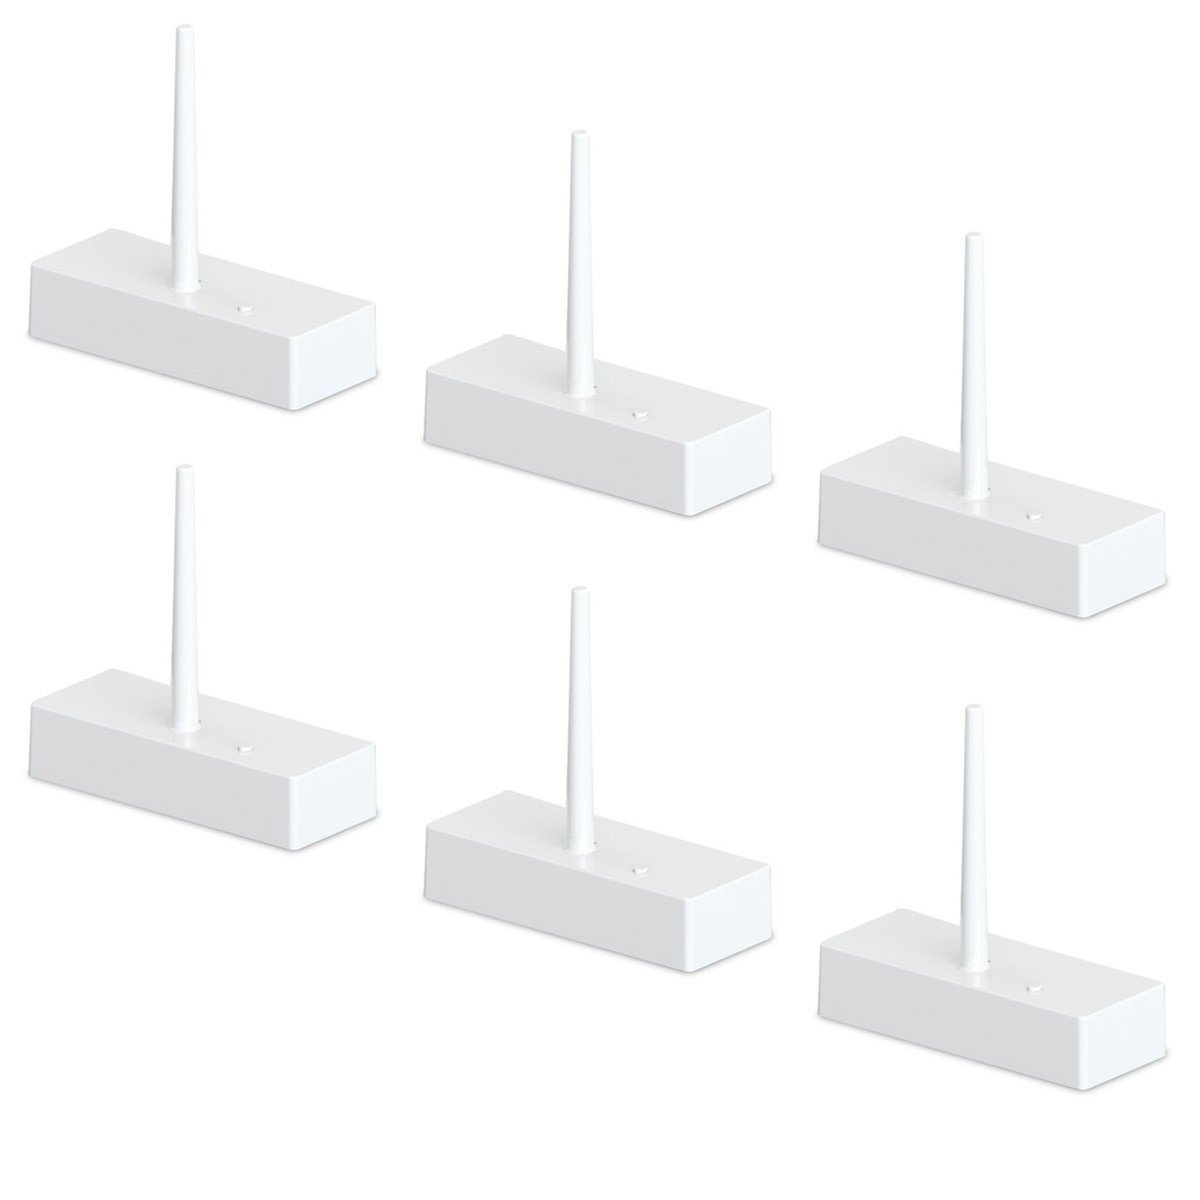 Insteon 6-Pack Water Leak Sensor